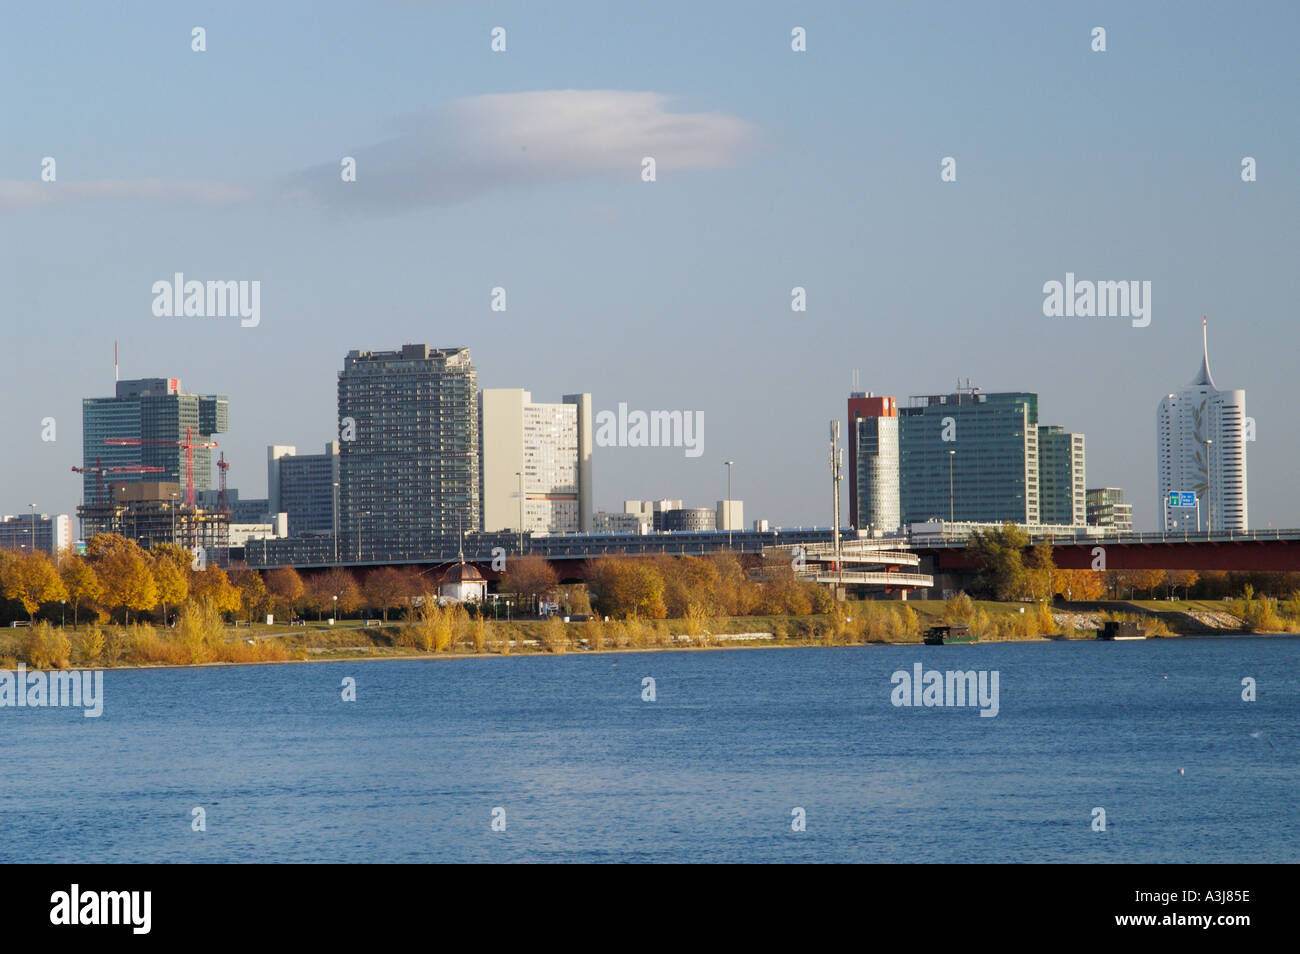 Ares Tower Uno City Danube Vienna Austria - Stock Image